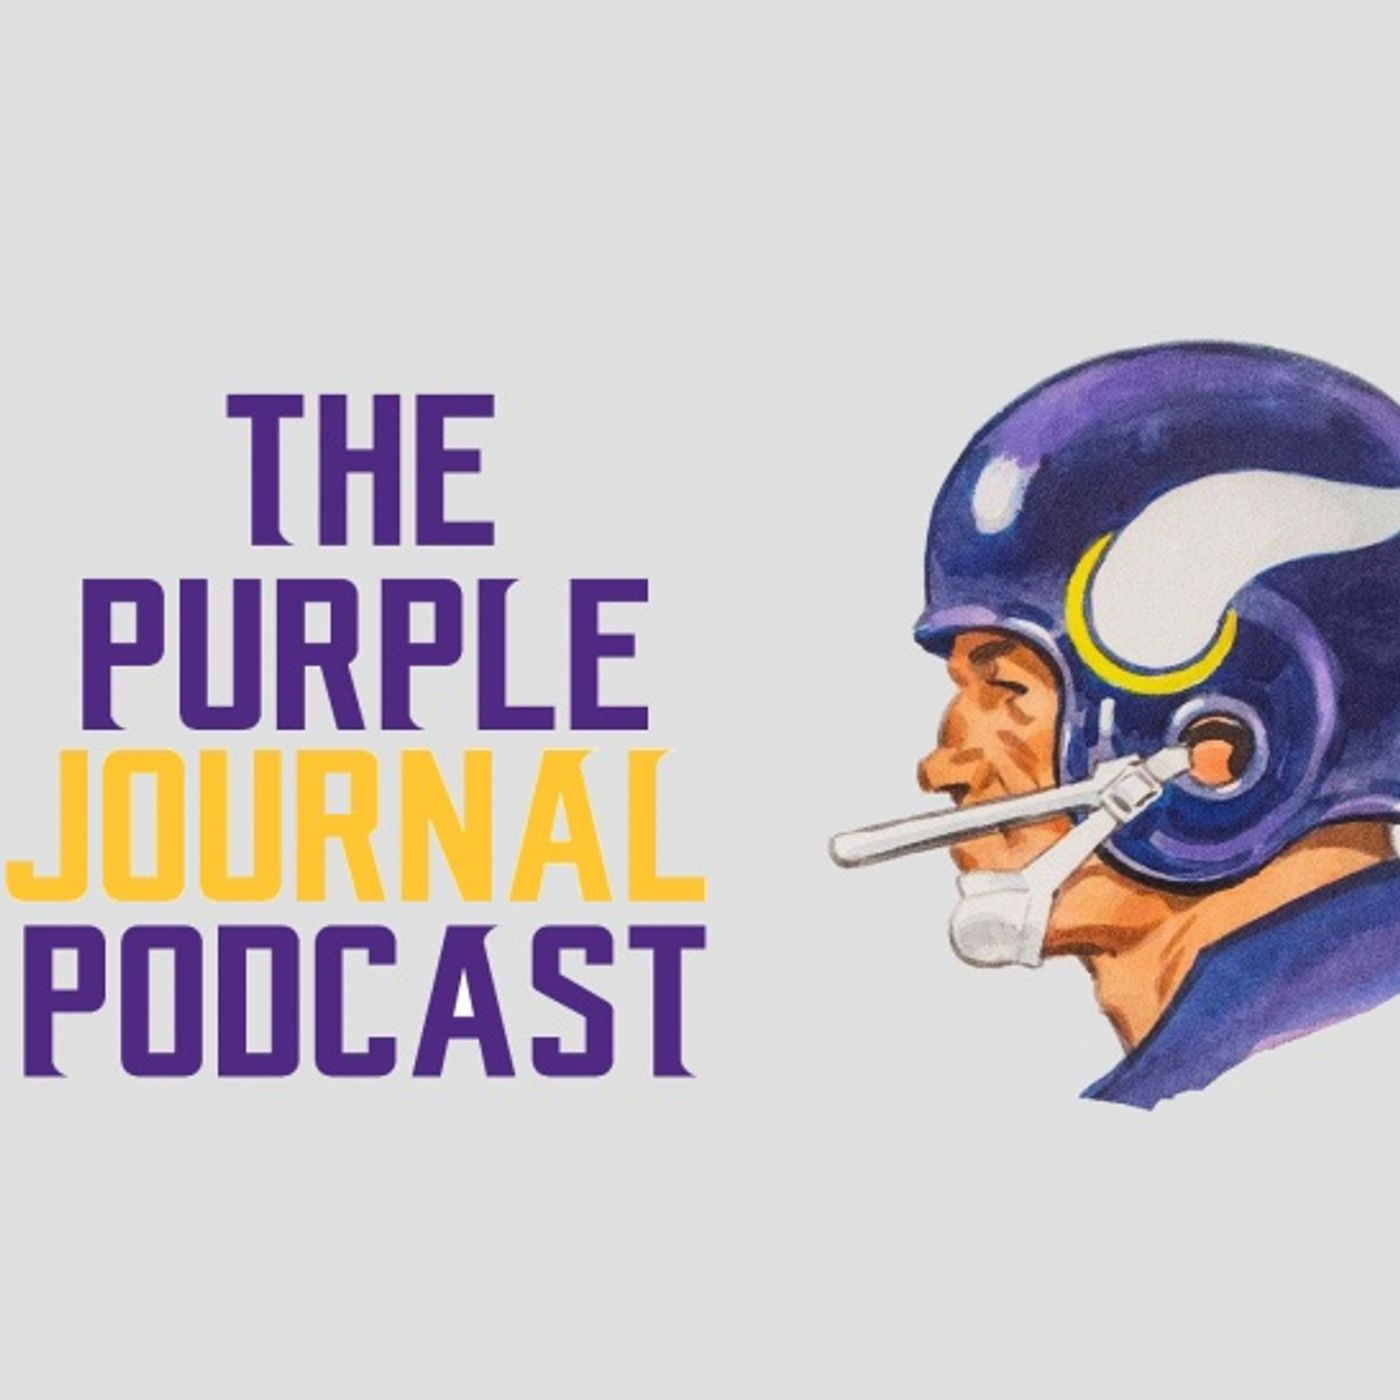 The purpleJOURNAL Podcast -The Prepping for Camp Edition